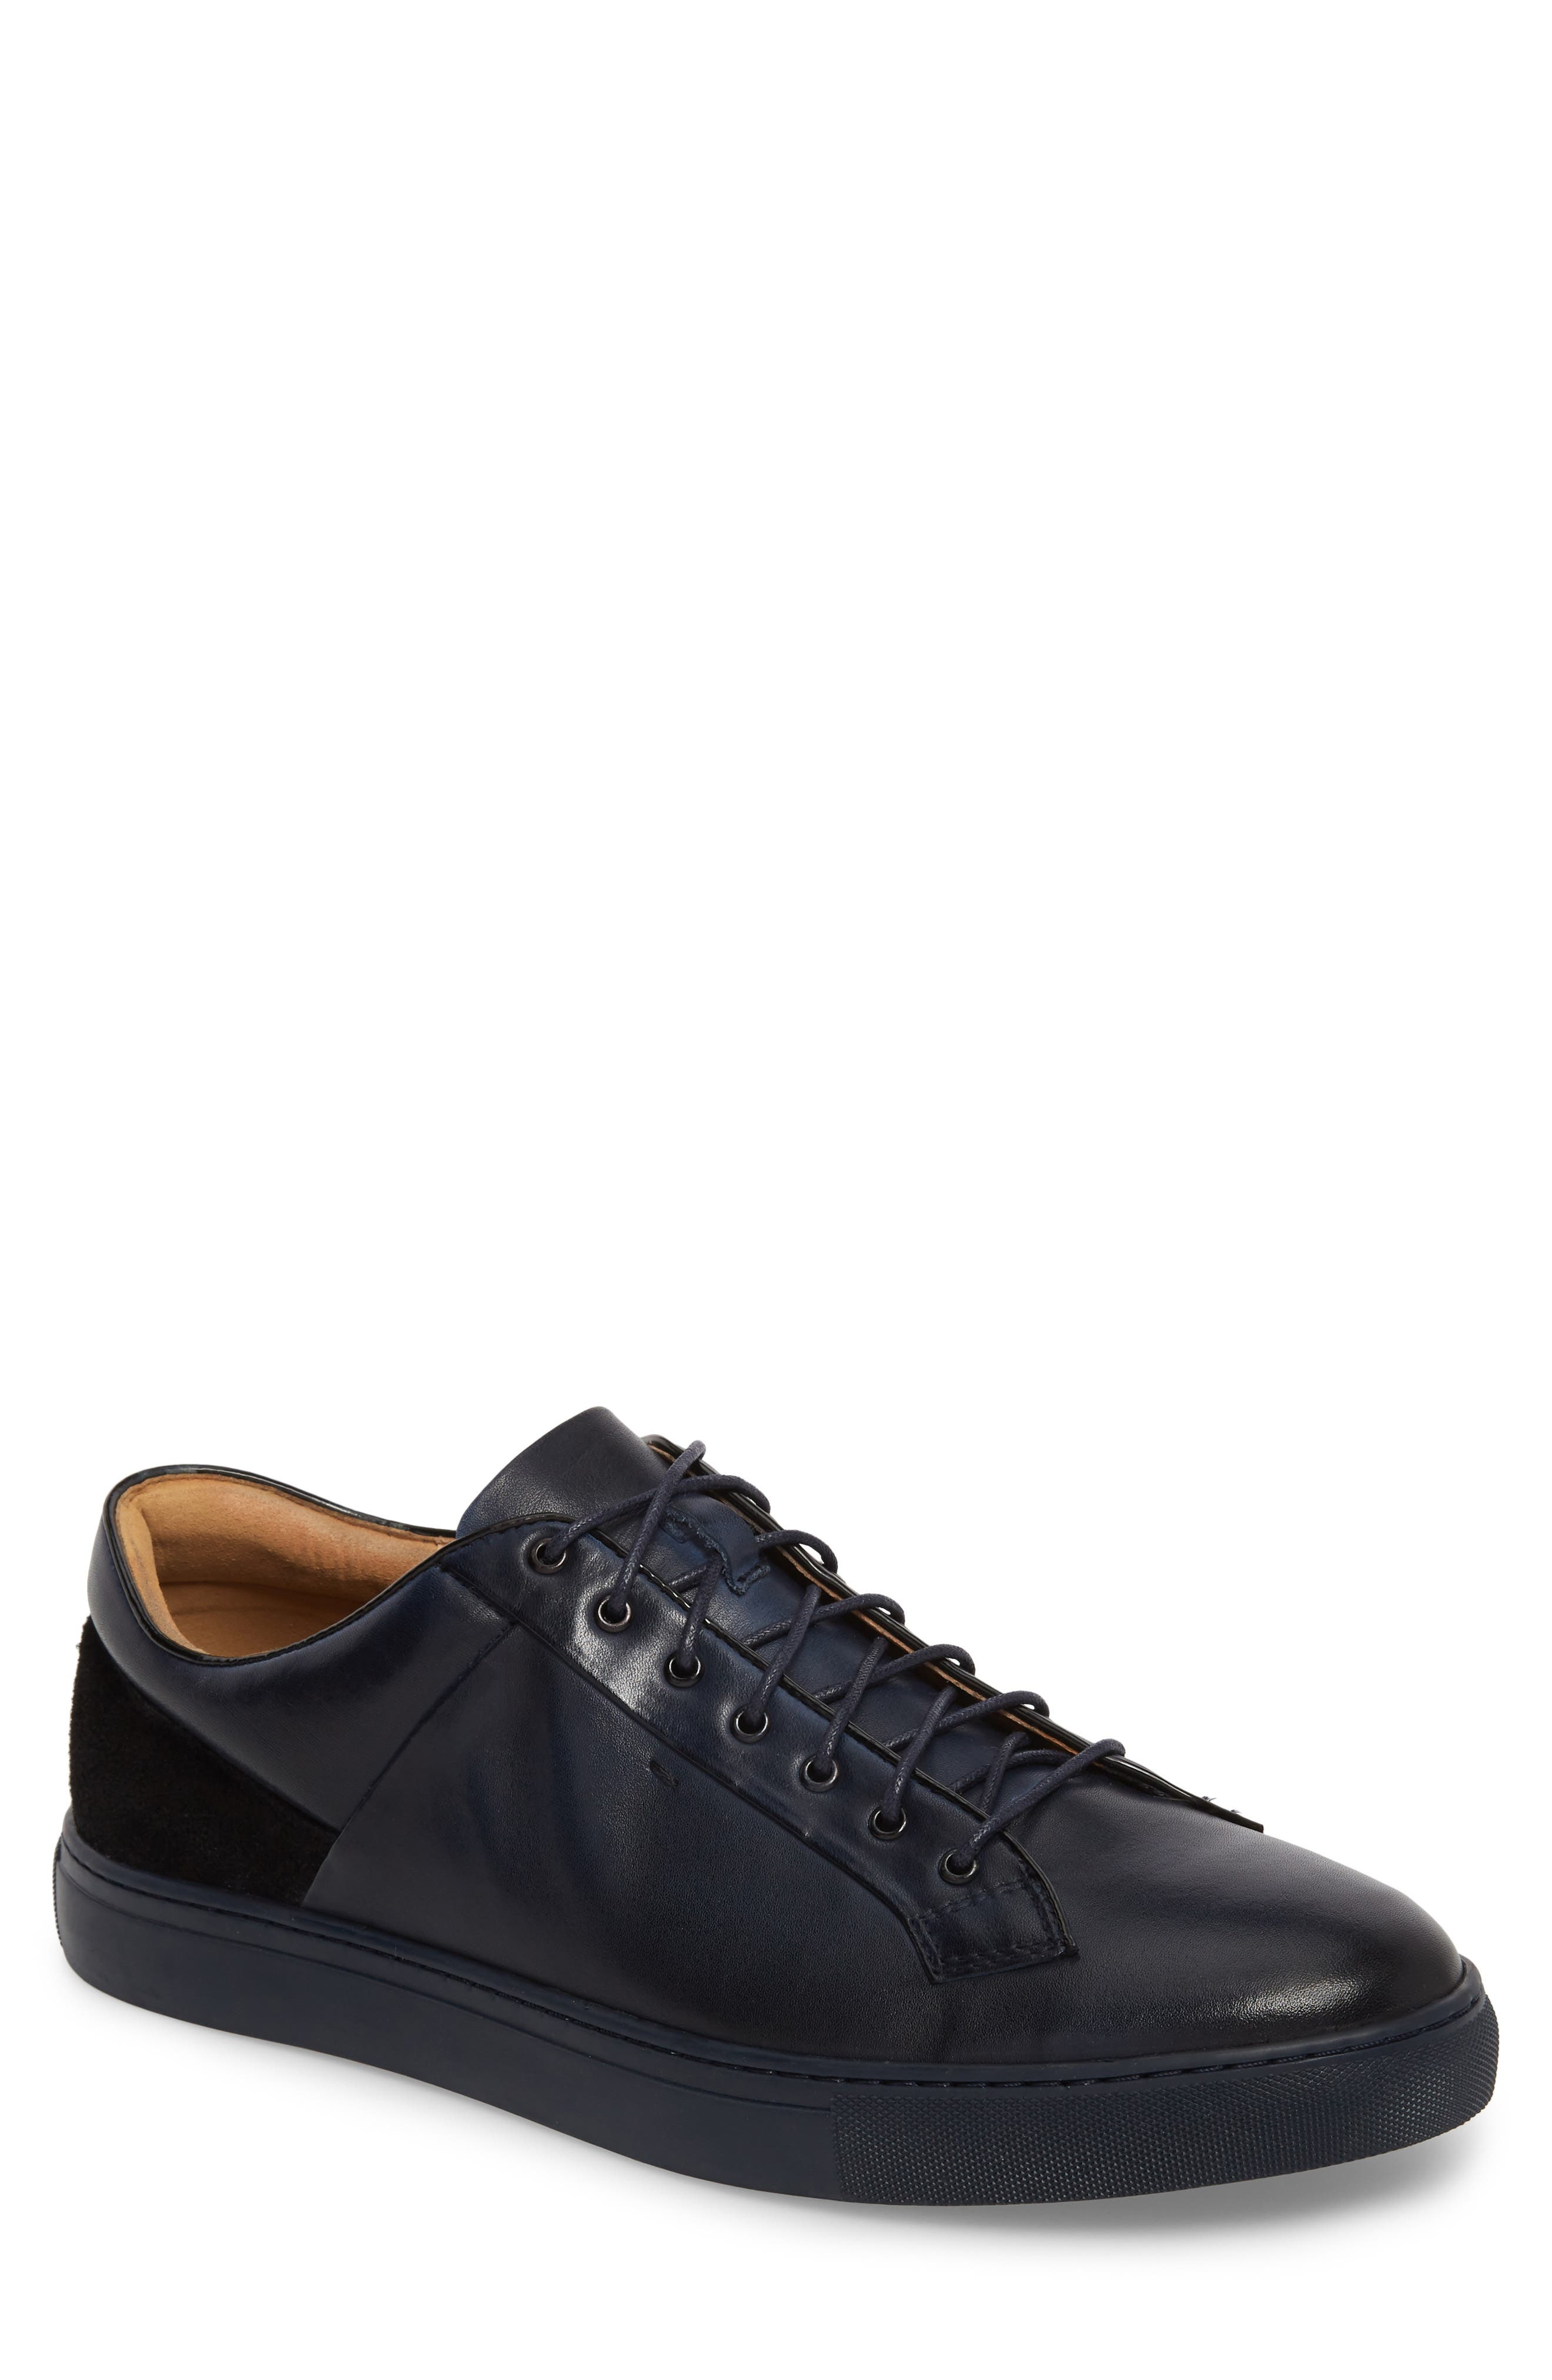 Pitch Low Top Sneaker,                         Main,                         color, Navy Leather/ Suede